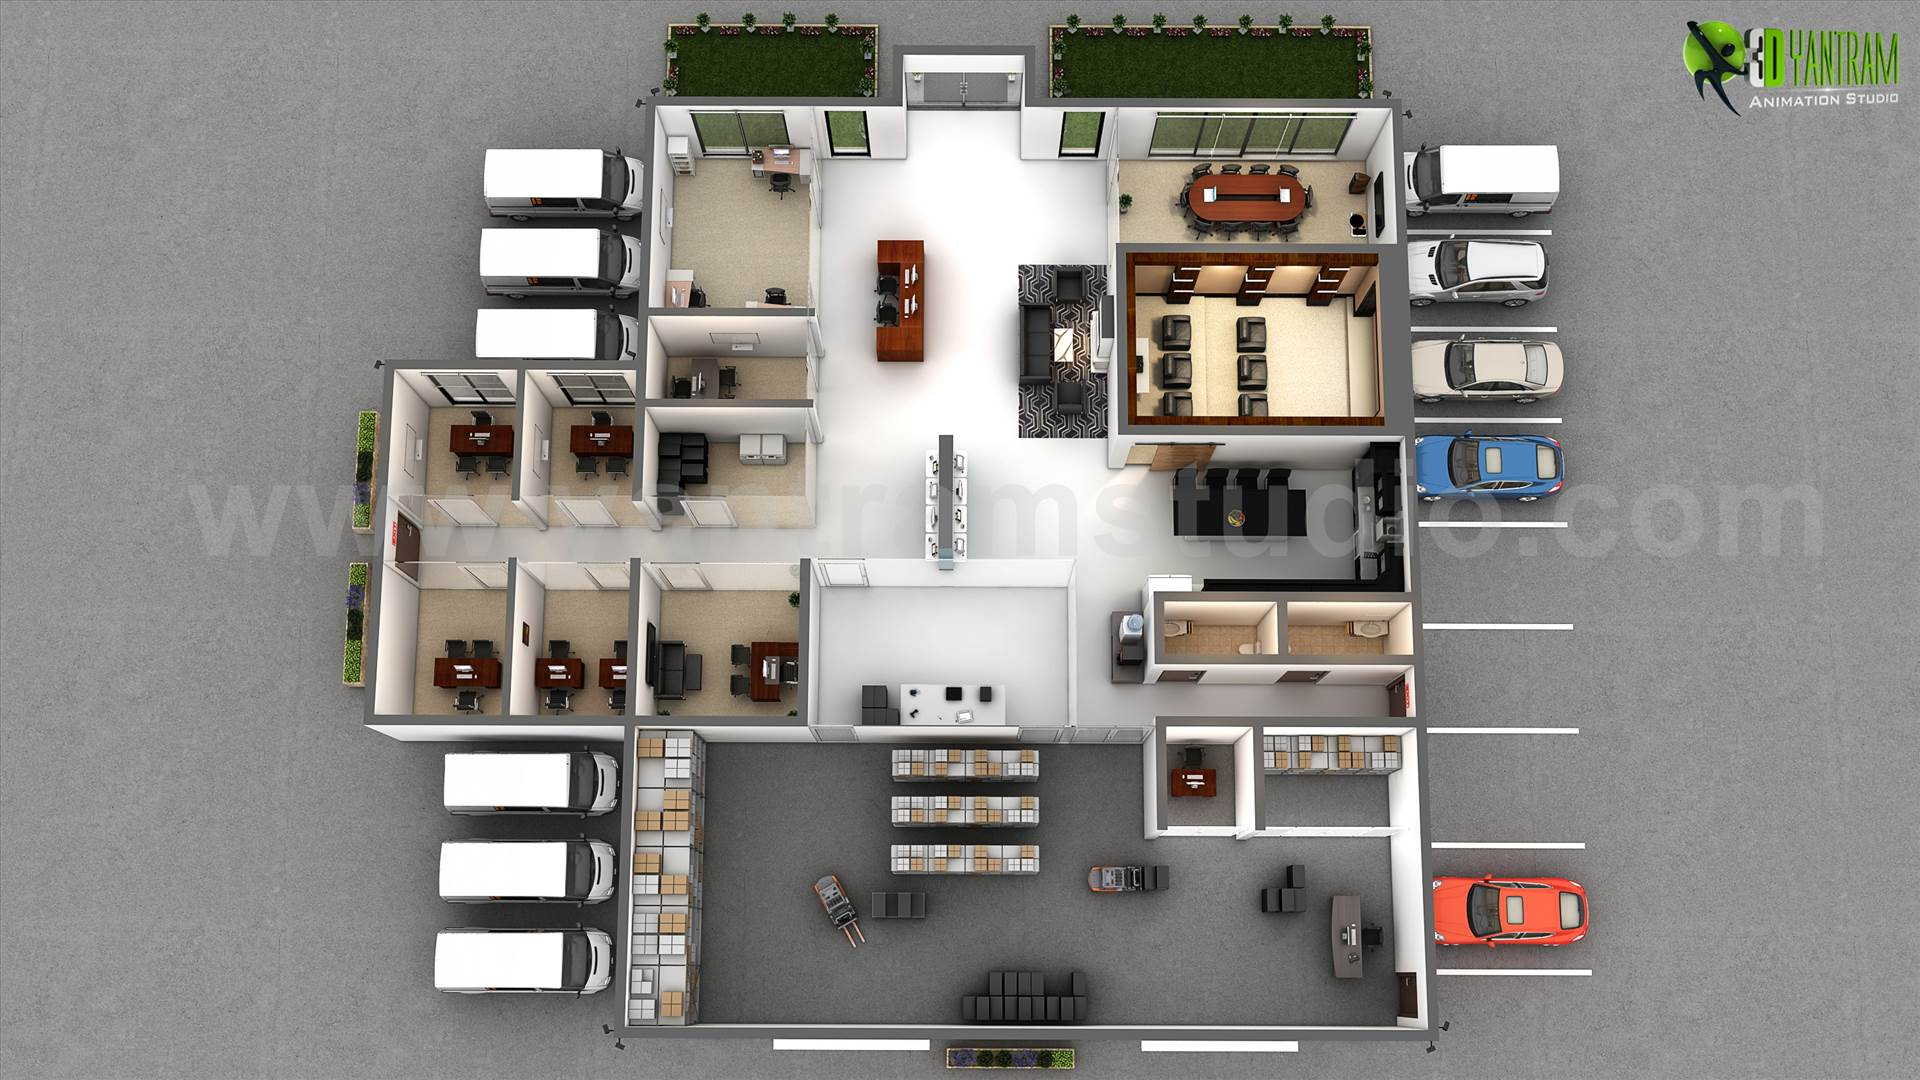 Floor plan design companies for office architecture 3d - Office floor plan design software ...